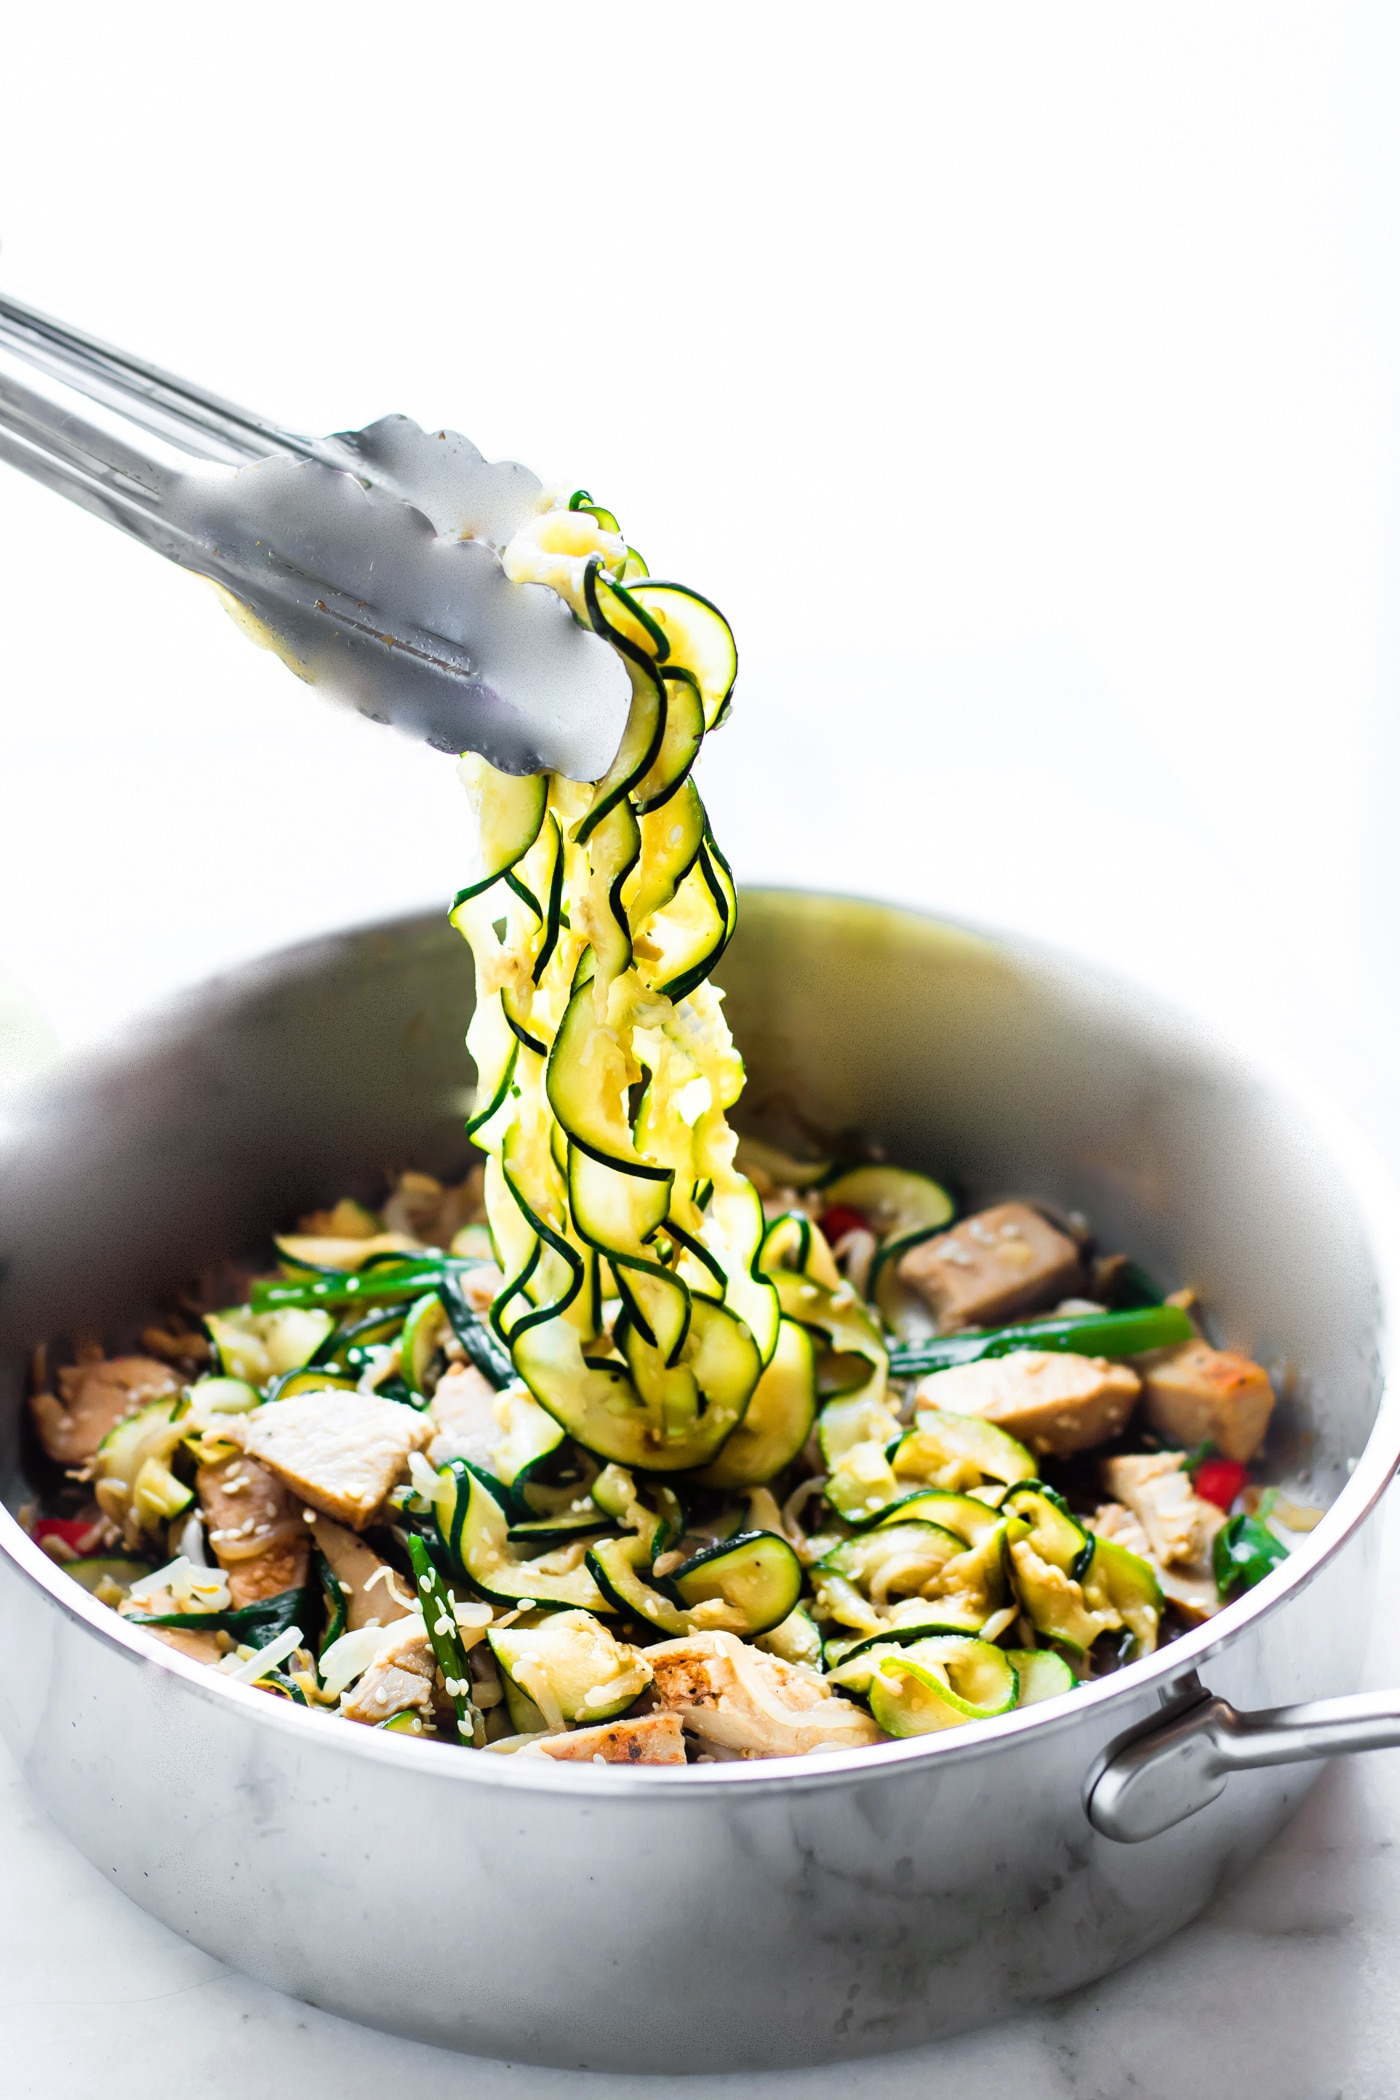 tossing zucchini noodles with turkey and veggies to make a healthy turkey and zucchini stir fry.